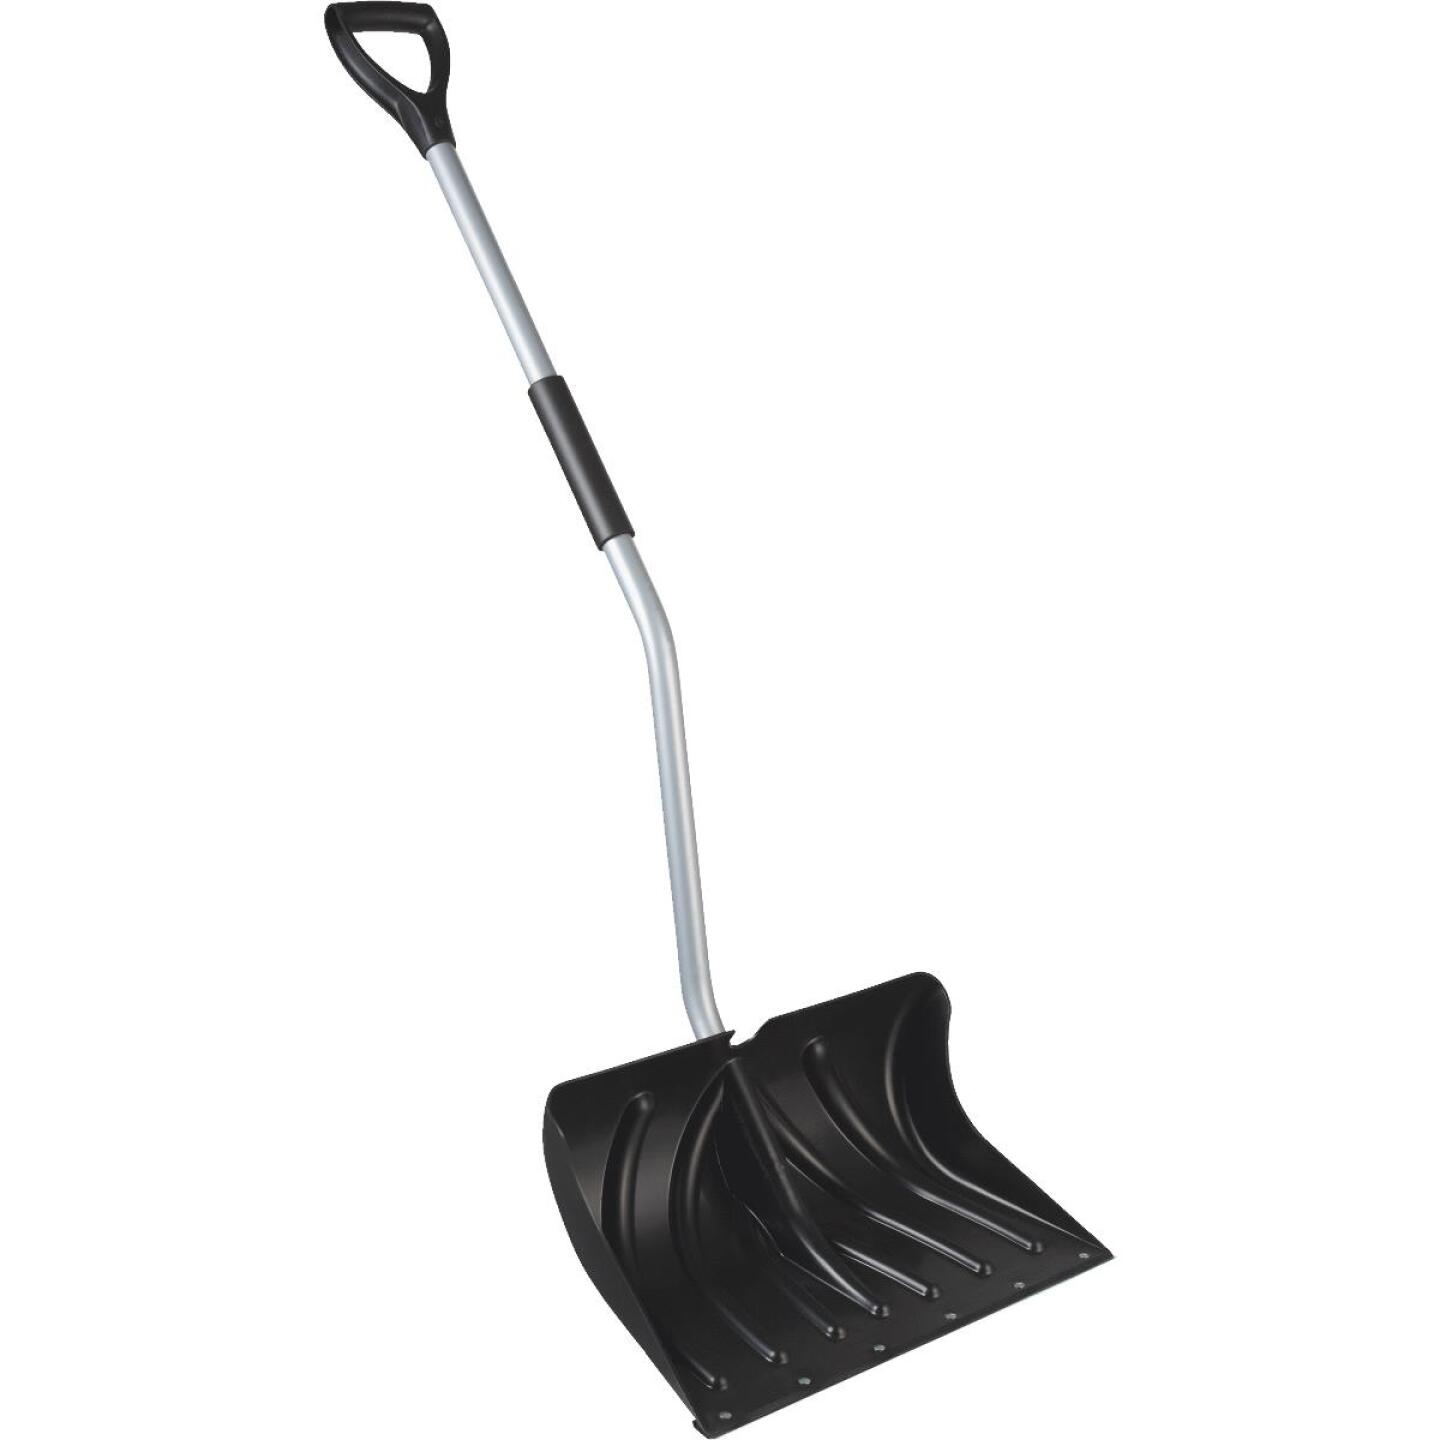 20 In. Poly Ergo Snow Shovel with 45 In. Steel Handle Image 1